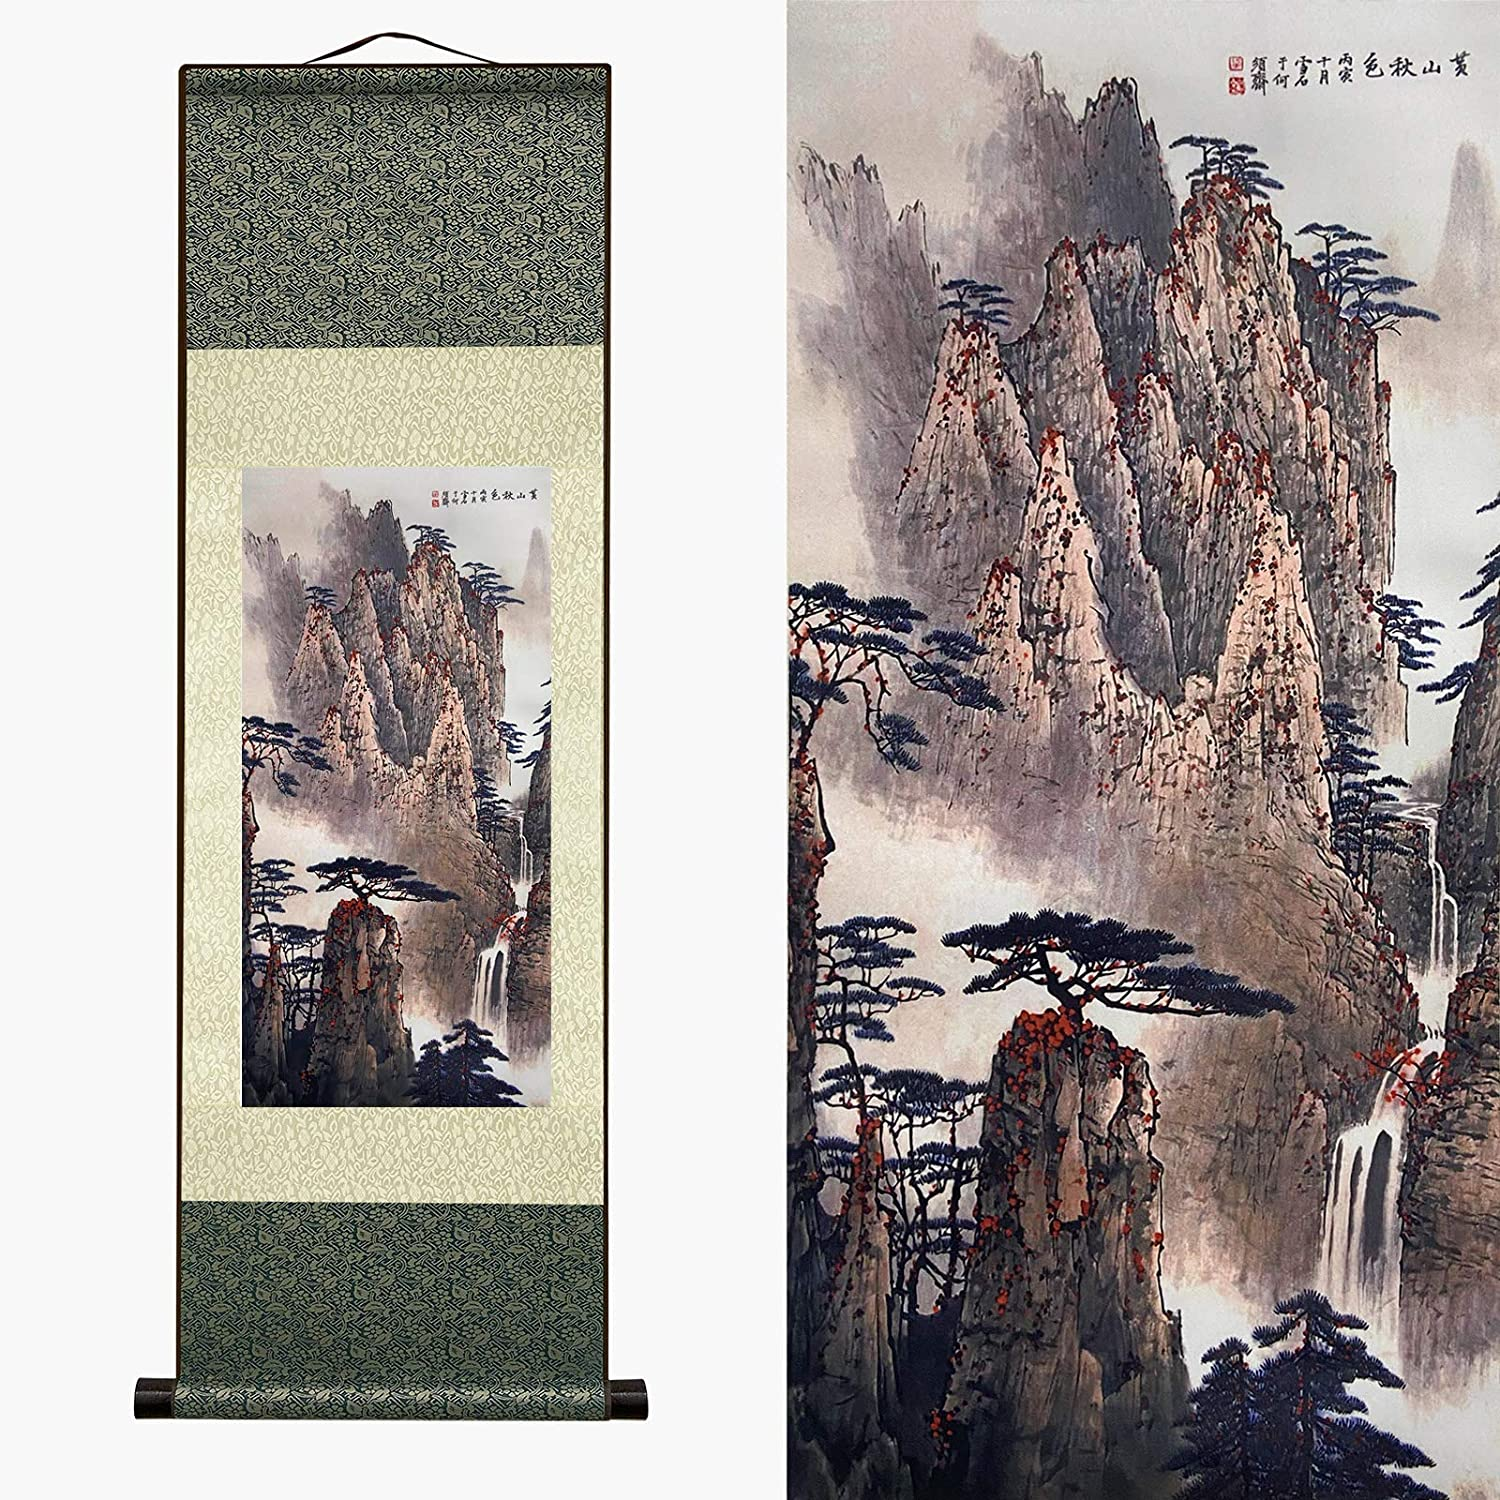 Asian Wall Decor Beautiful Silk Scroll Painting Waterfall River Landscape Painting - Autumn Huangshan Landscape Mountain Oriental Decor Chinese Wall Hanging Reel Scroll Painting (39 x 12 in)